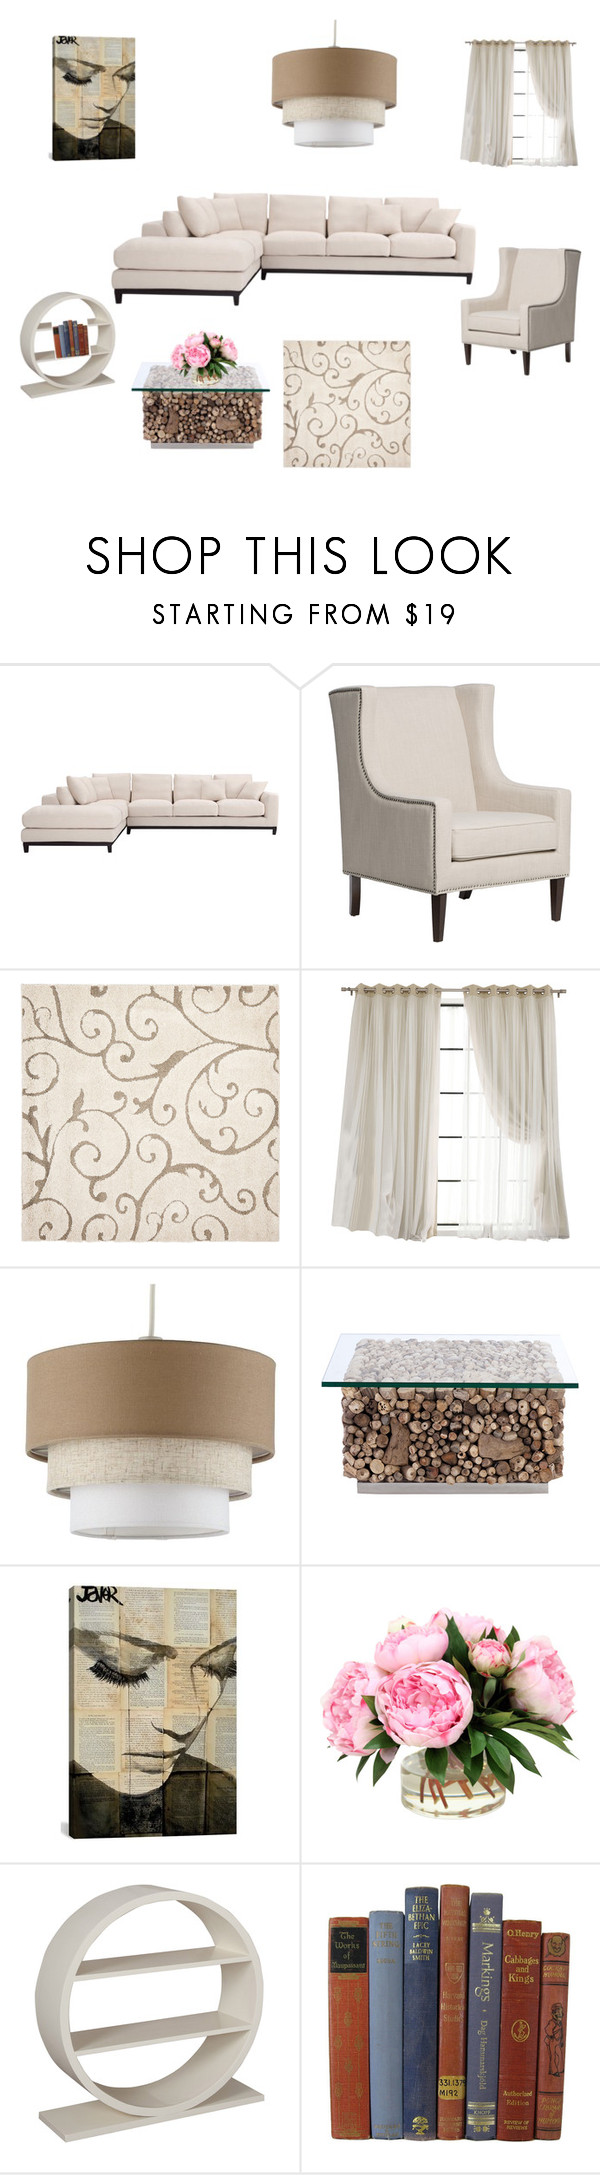 Living Room  By Londonpolk On Polyvore Featuring Interior - Home decor pictures living room 2